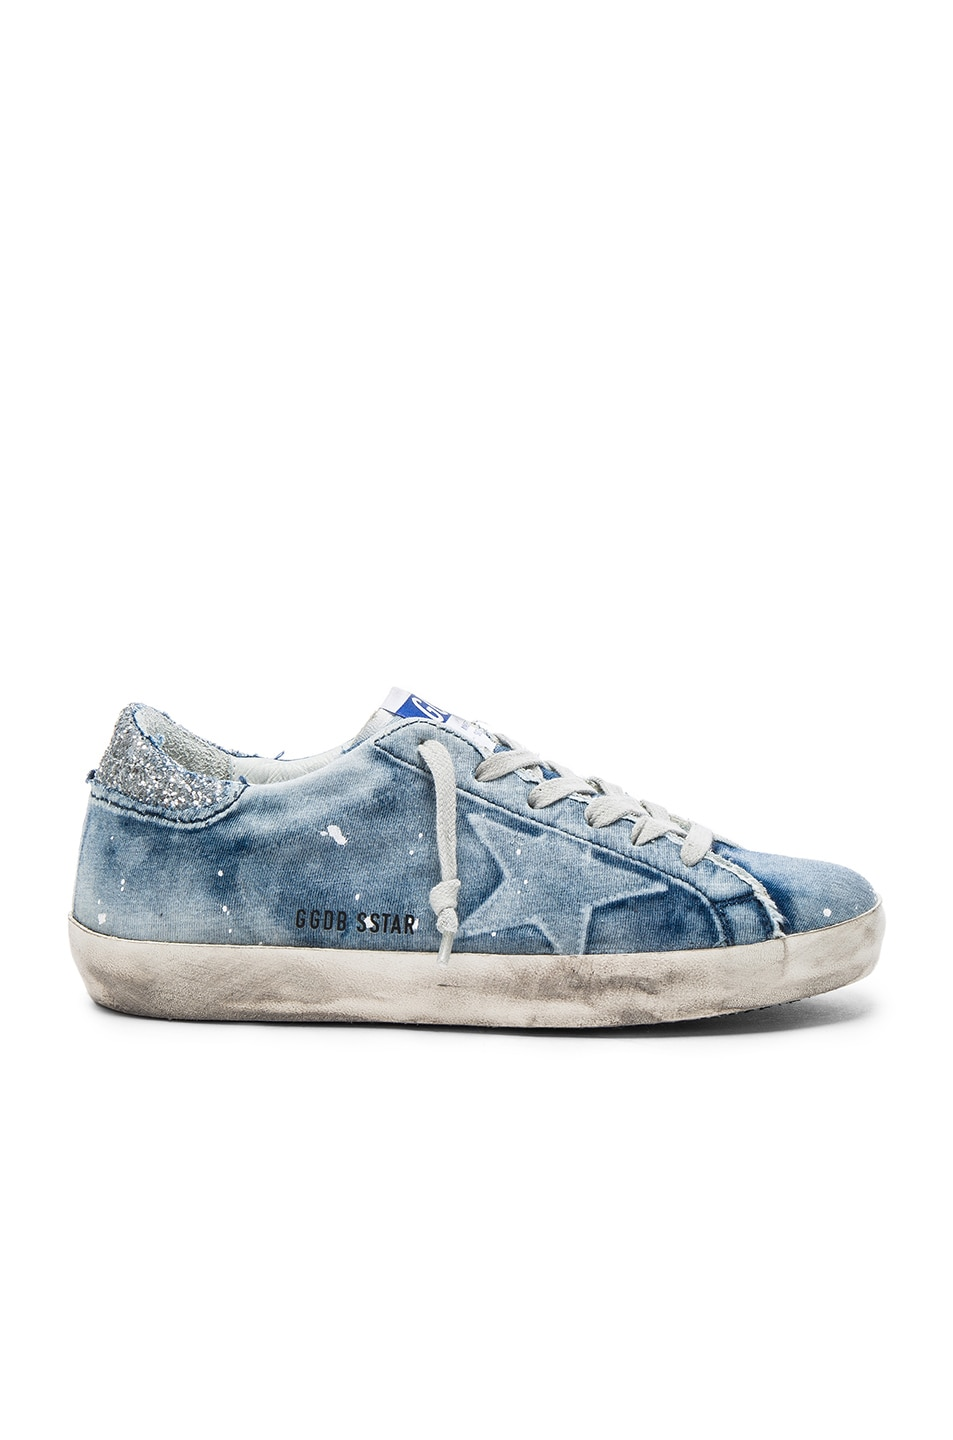 4f09820533e1e Image 1 of Golden Goose Denim Superstar Low Sneakers in Bleached